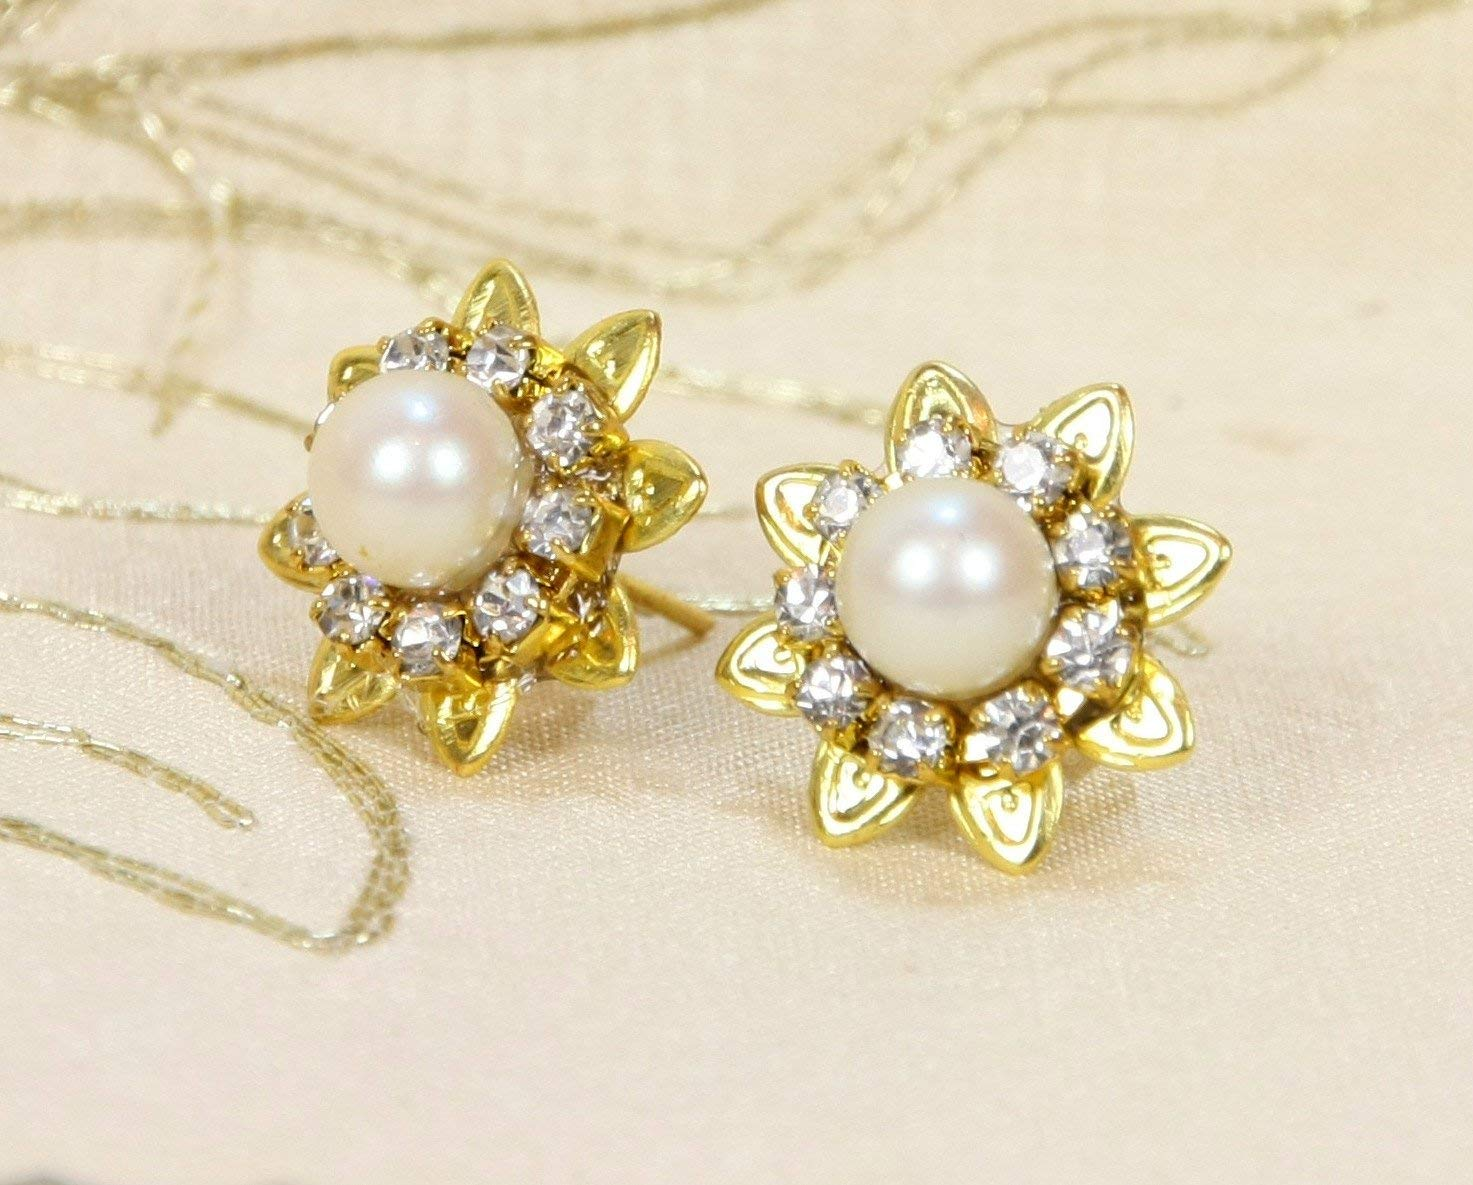 Get Quotations Bridal Earrings Pearls And Rhinestone Gold Ivory Real Genuine